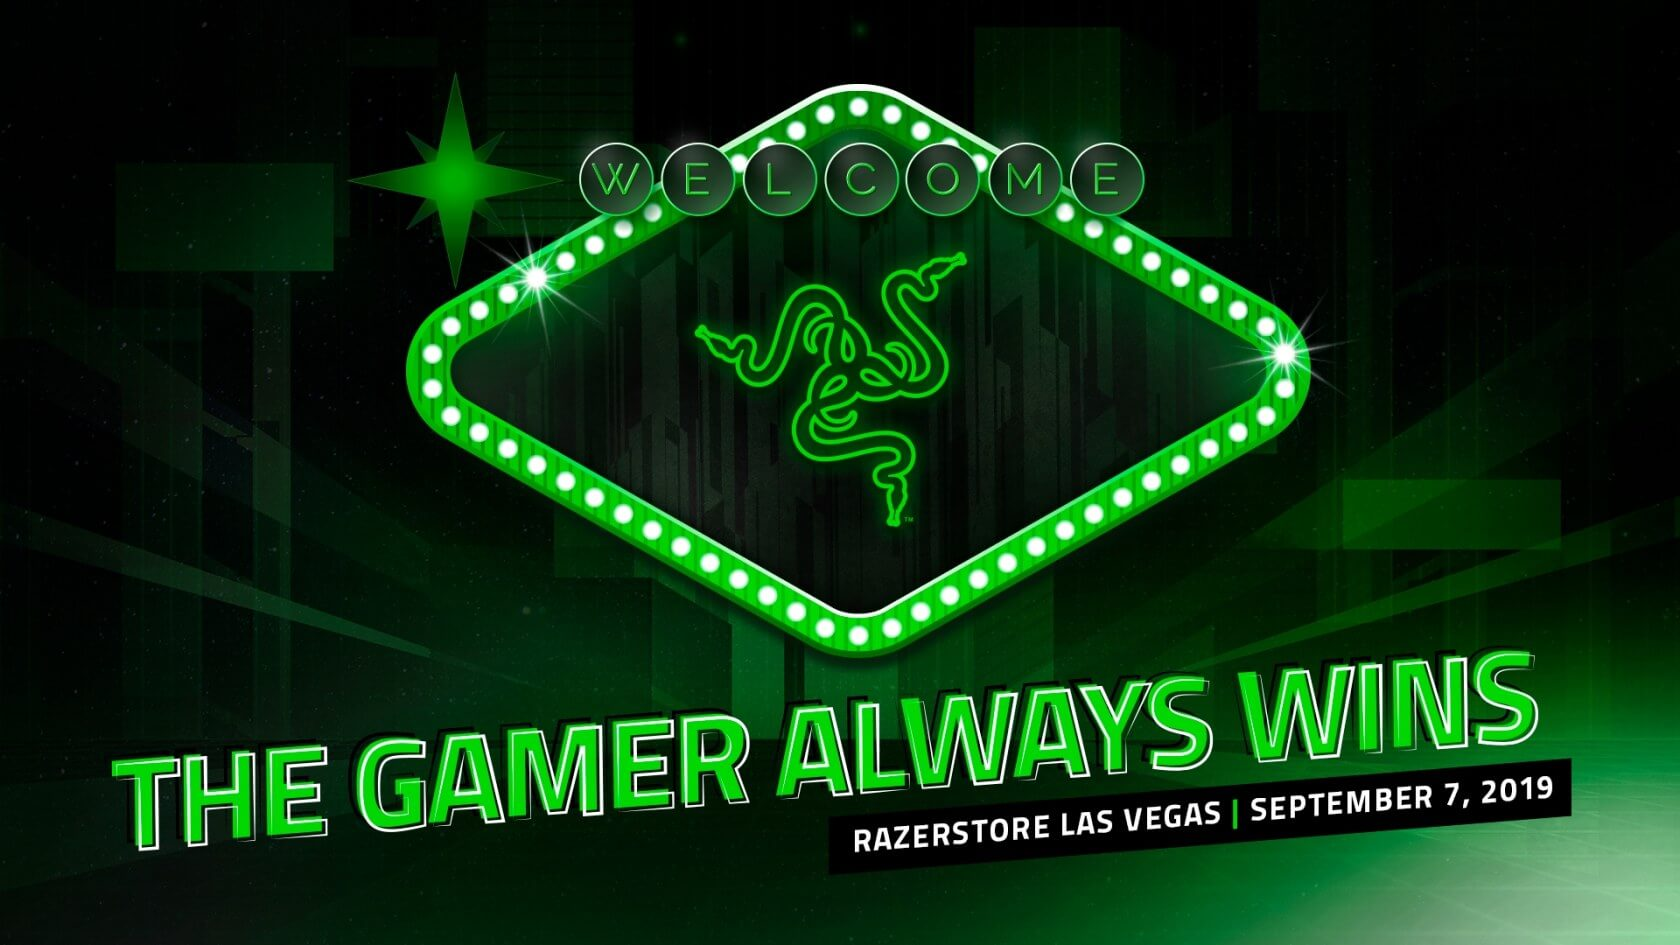 Razer is opening up a retail store in Las Vegas this fall